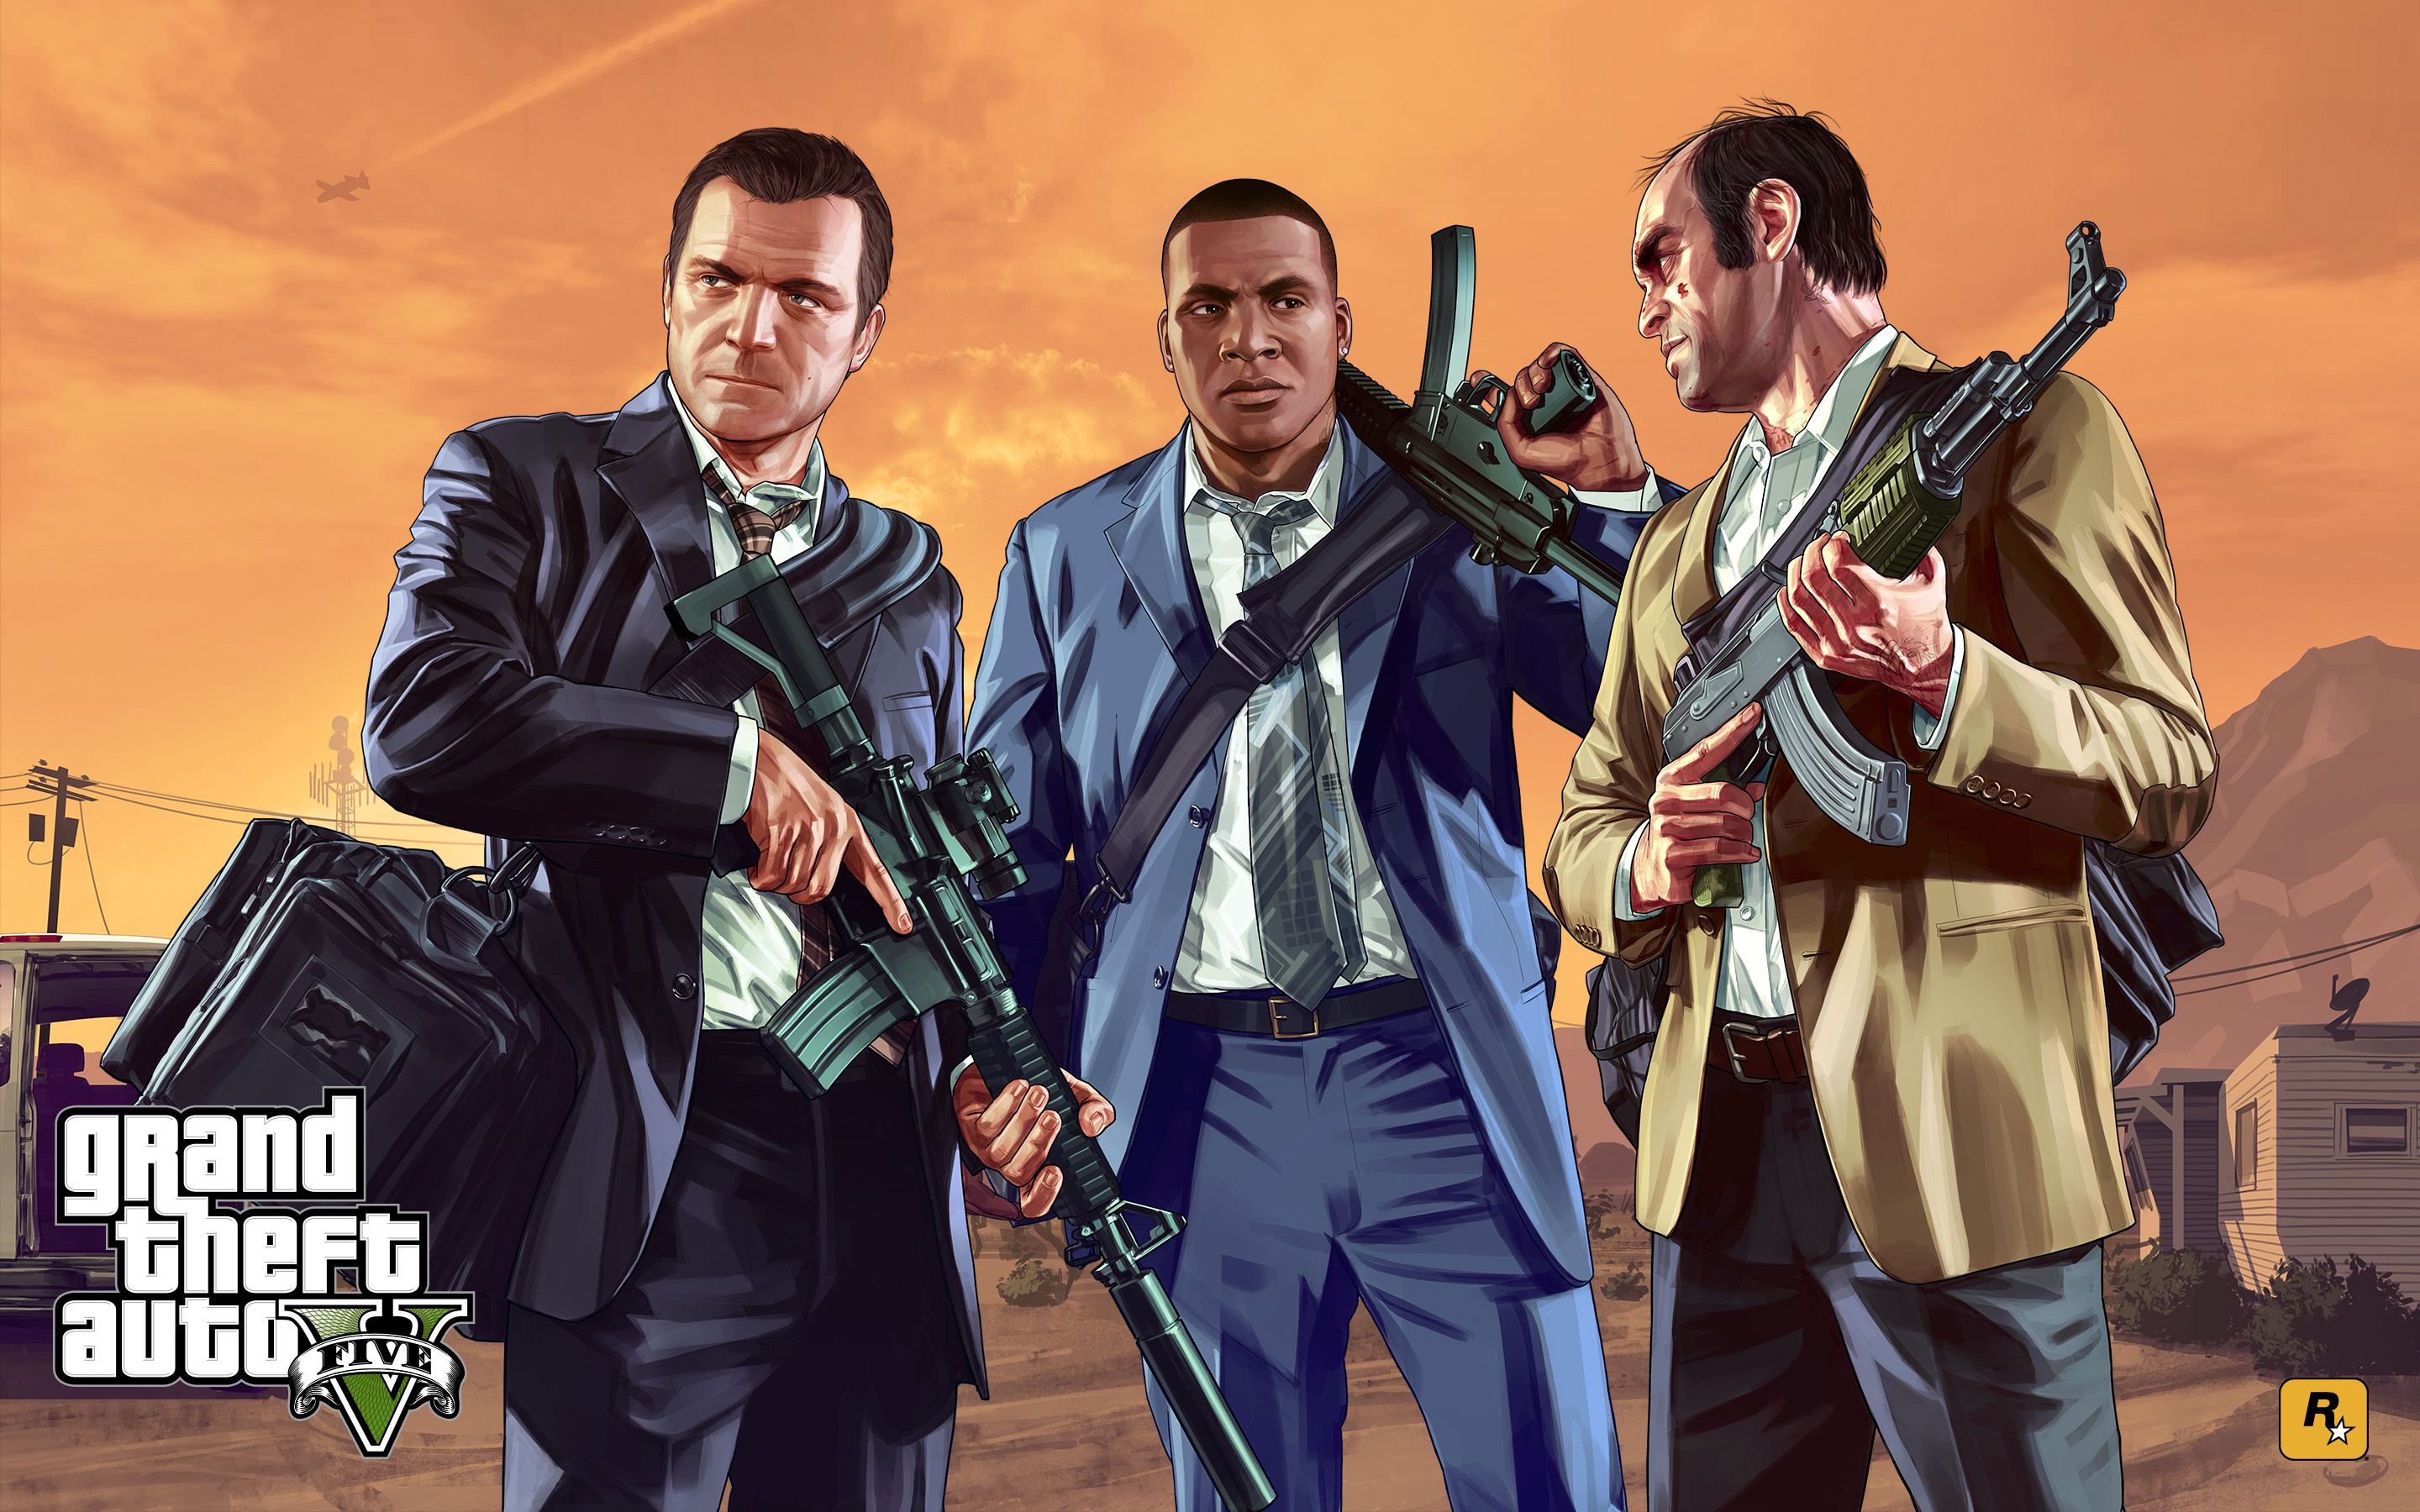 grand theft auto v ha vendido mas de 55 millones de copias rockstar games rdr 2 3djuegos. Black Bedroom Furniture Sets. Home Design Ideas